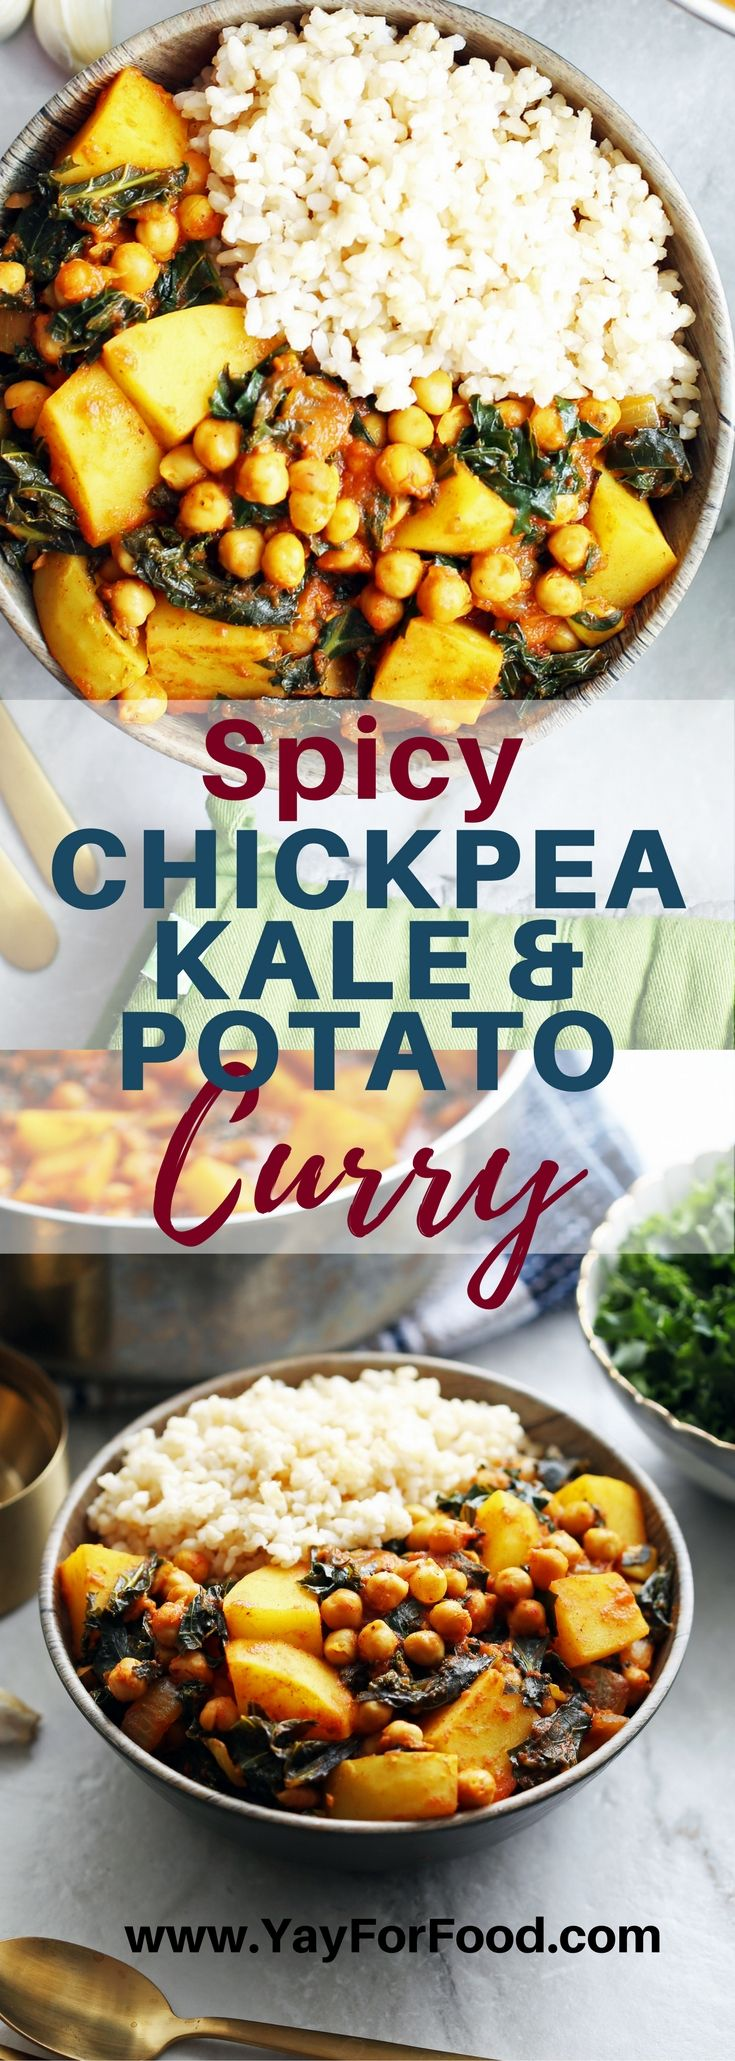 SPICY CHICKPEA KALE AND POTATO CURRY - A delicious 40 minute dish featuring chickpeas, potatoes, and kale all in a spicy tomato based curry. #vegan   #vegetarian   #glutenfree   #curry   #chickpea   #easyrecipes   #chickpeas   #dinner   #maindishes   #spicyfood